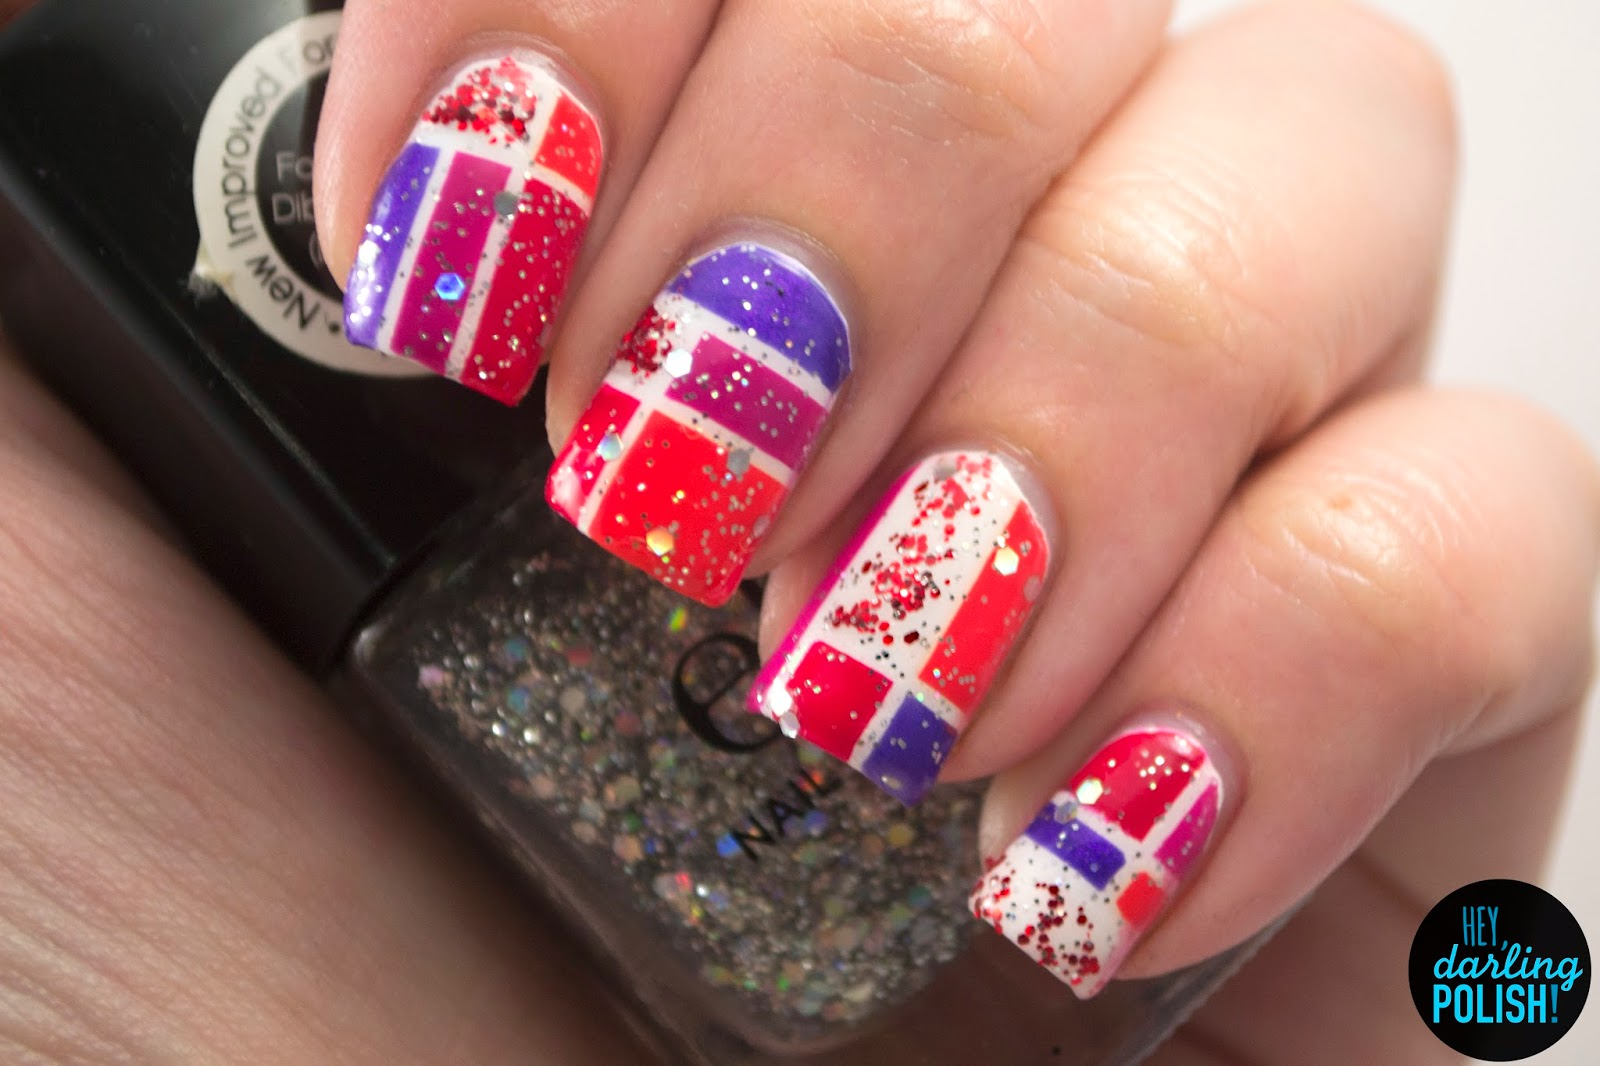 nails, nail art, nail polish, the never ending pile challenge, elf, color block, red, pink, purple, glitter, hey darling polish,